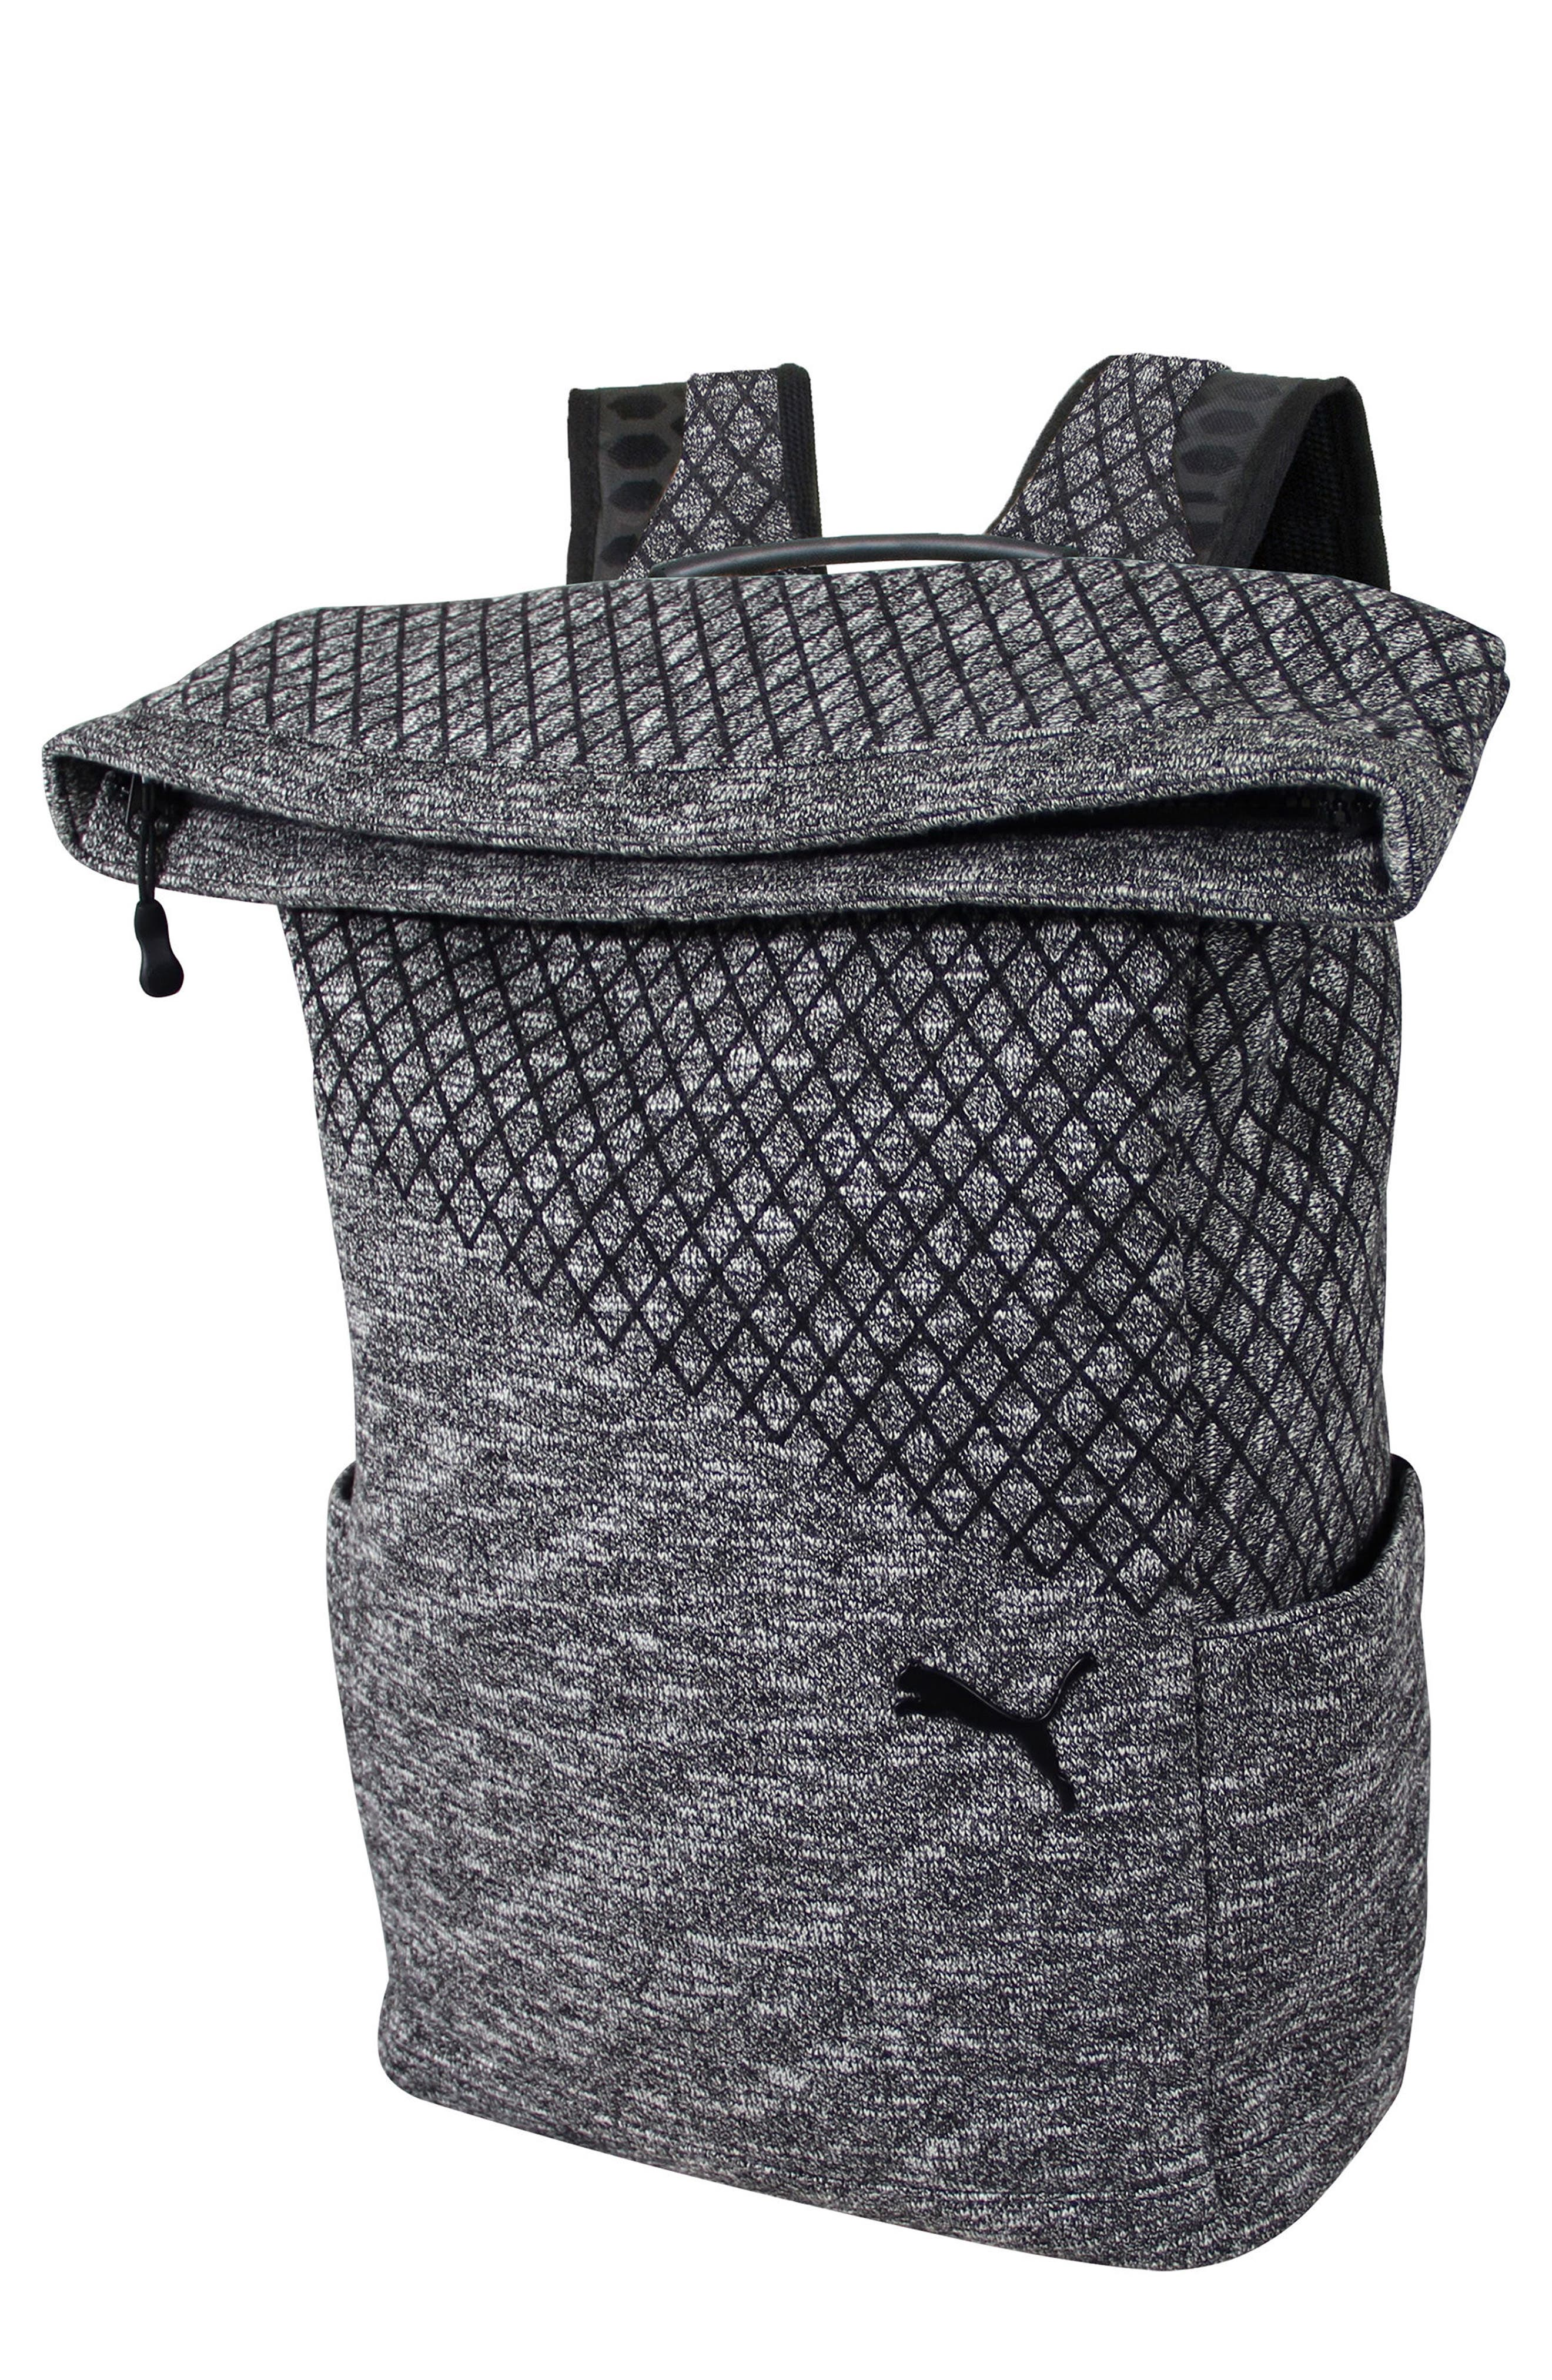 PUMA Evo 2.0 Foldover Top Knit Backpack